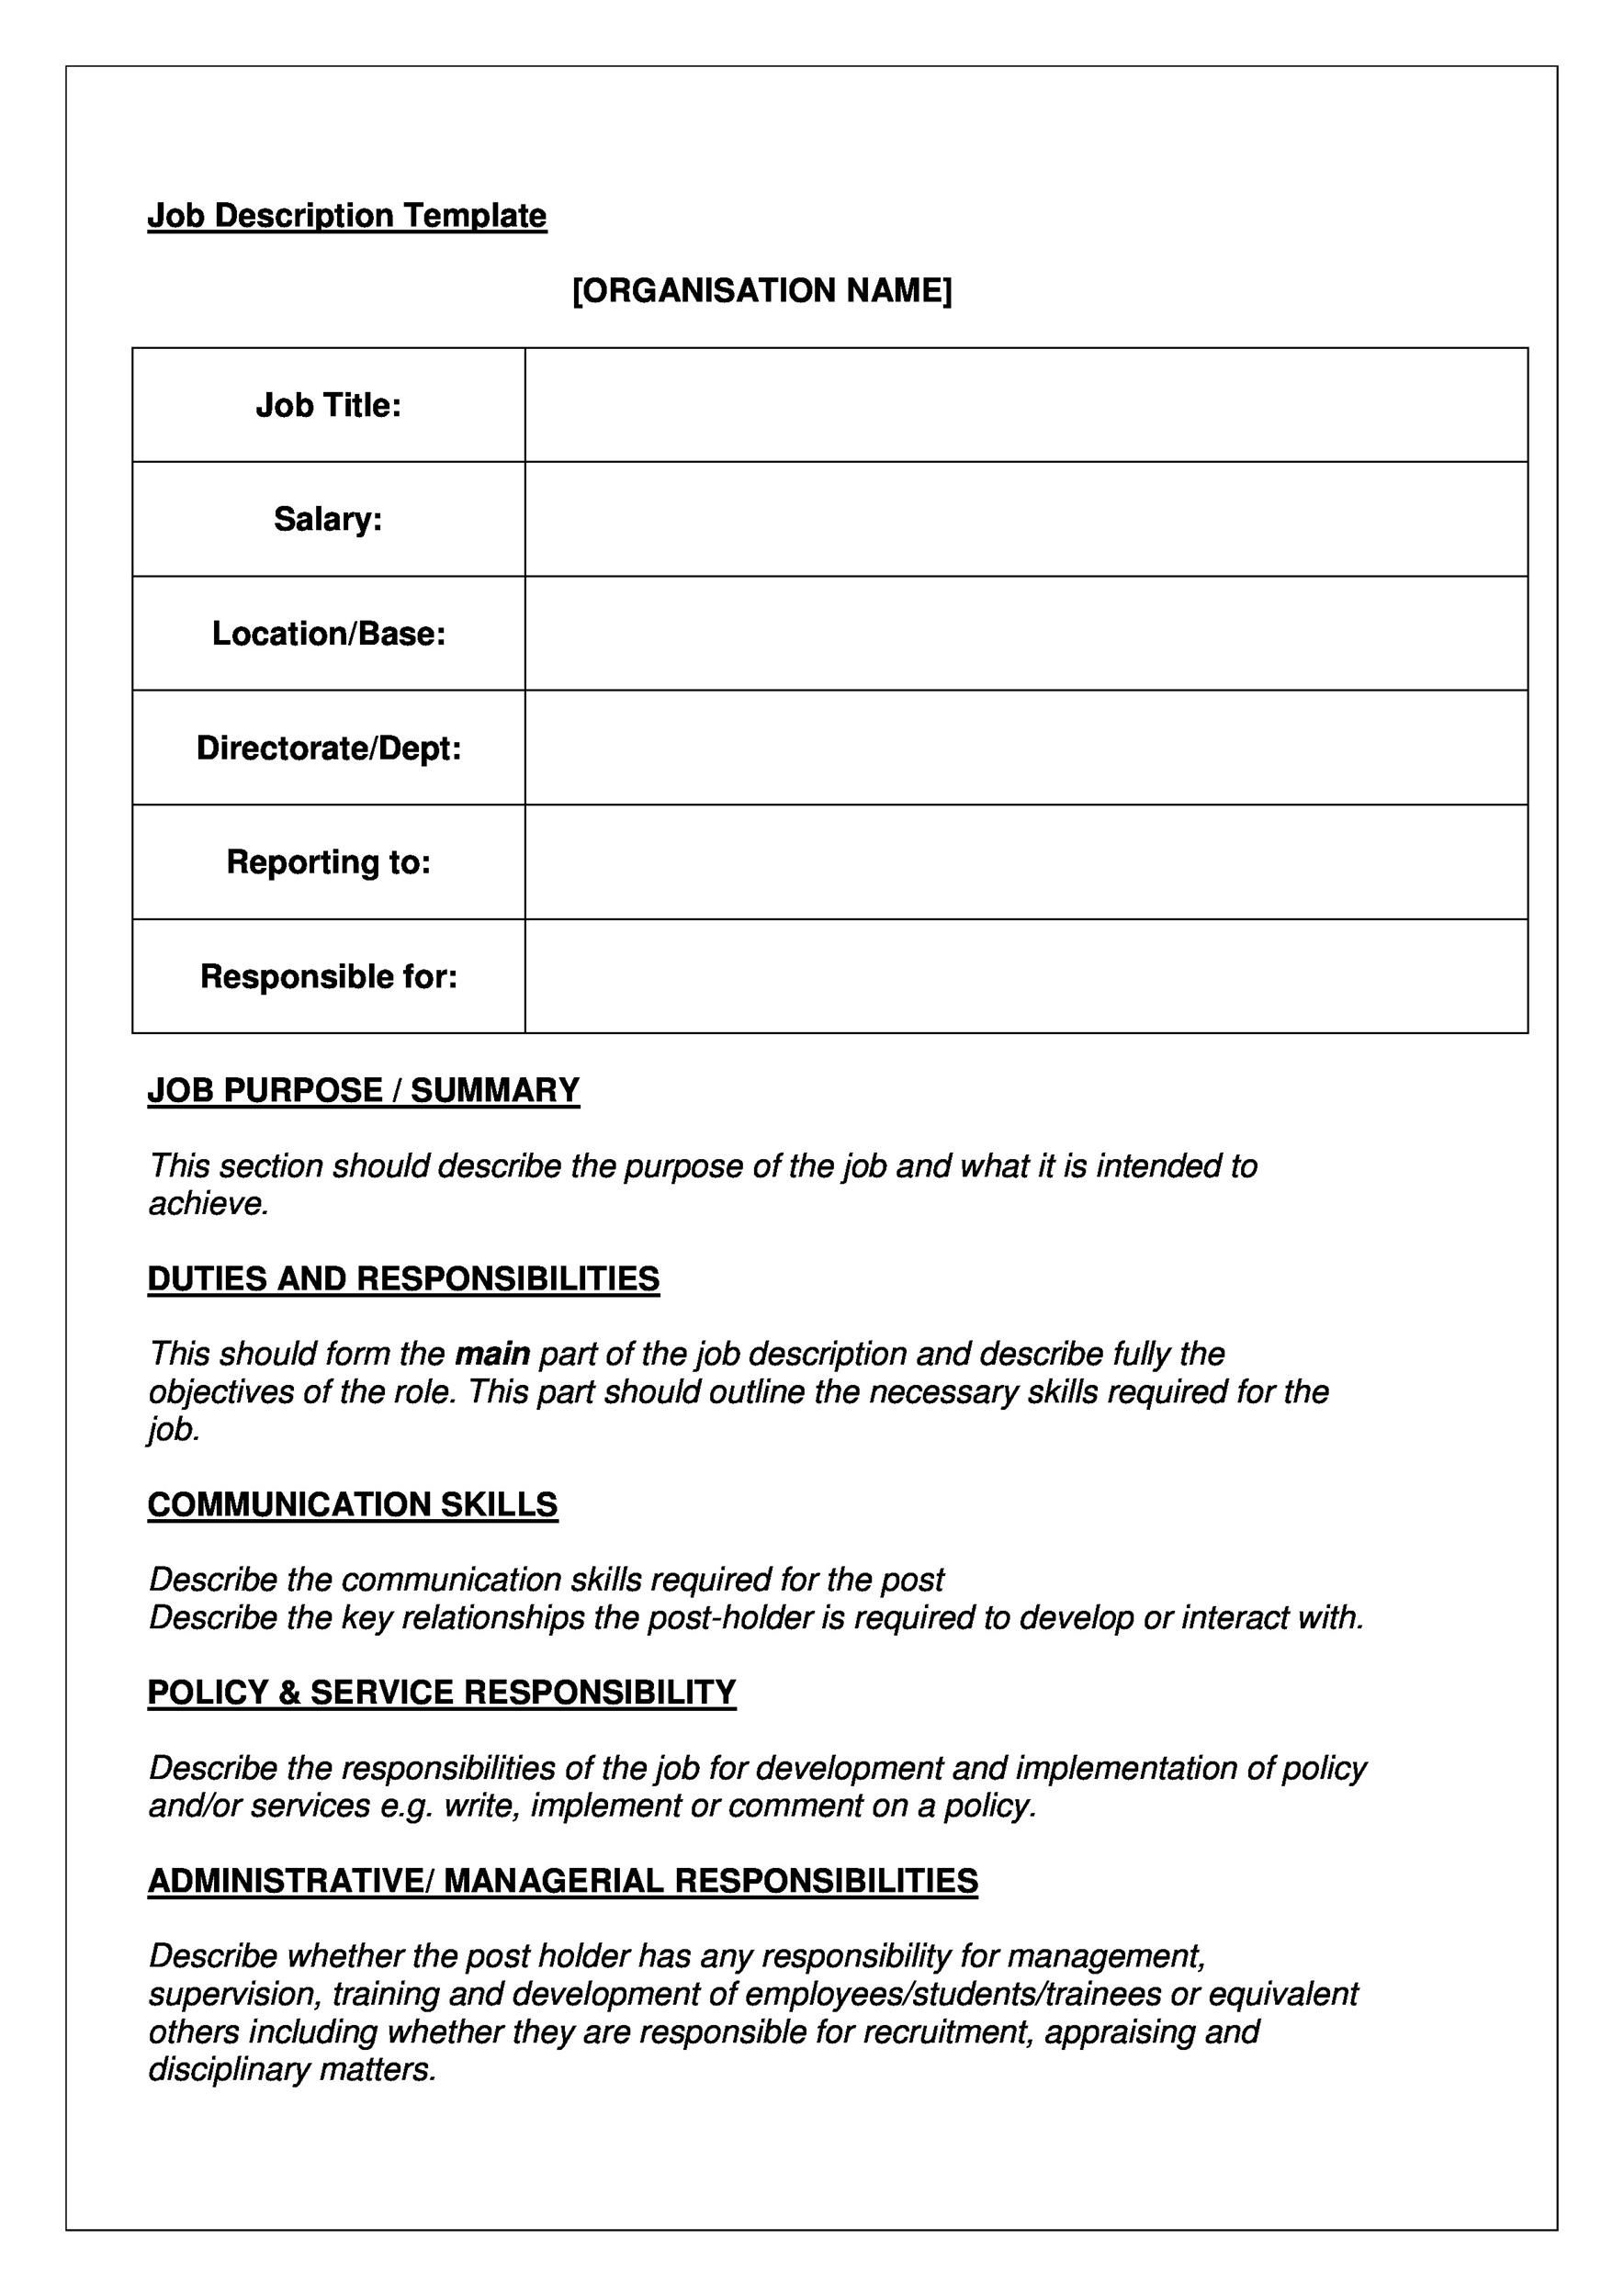 005 Stupendou Blank Job Description Template Picture  Word Free PrintableFull